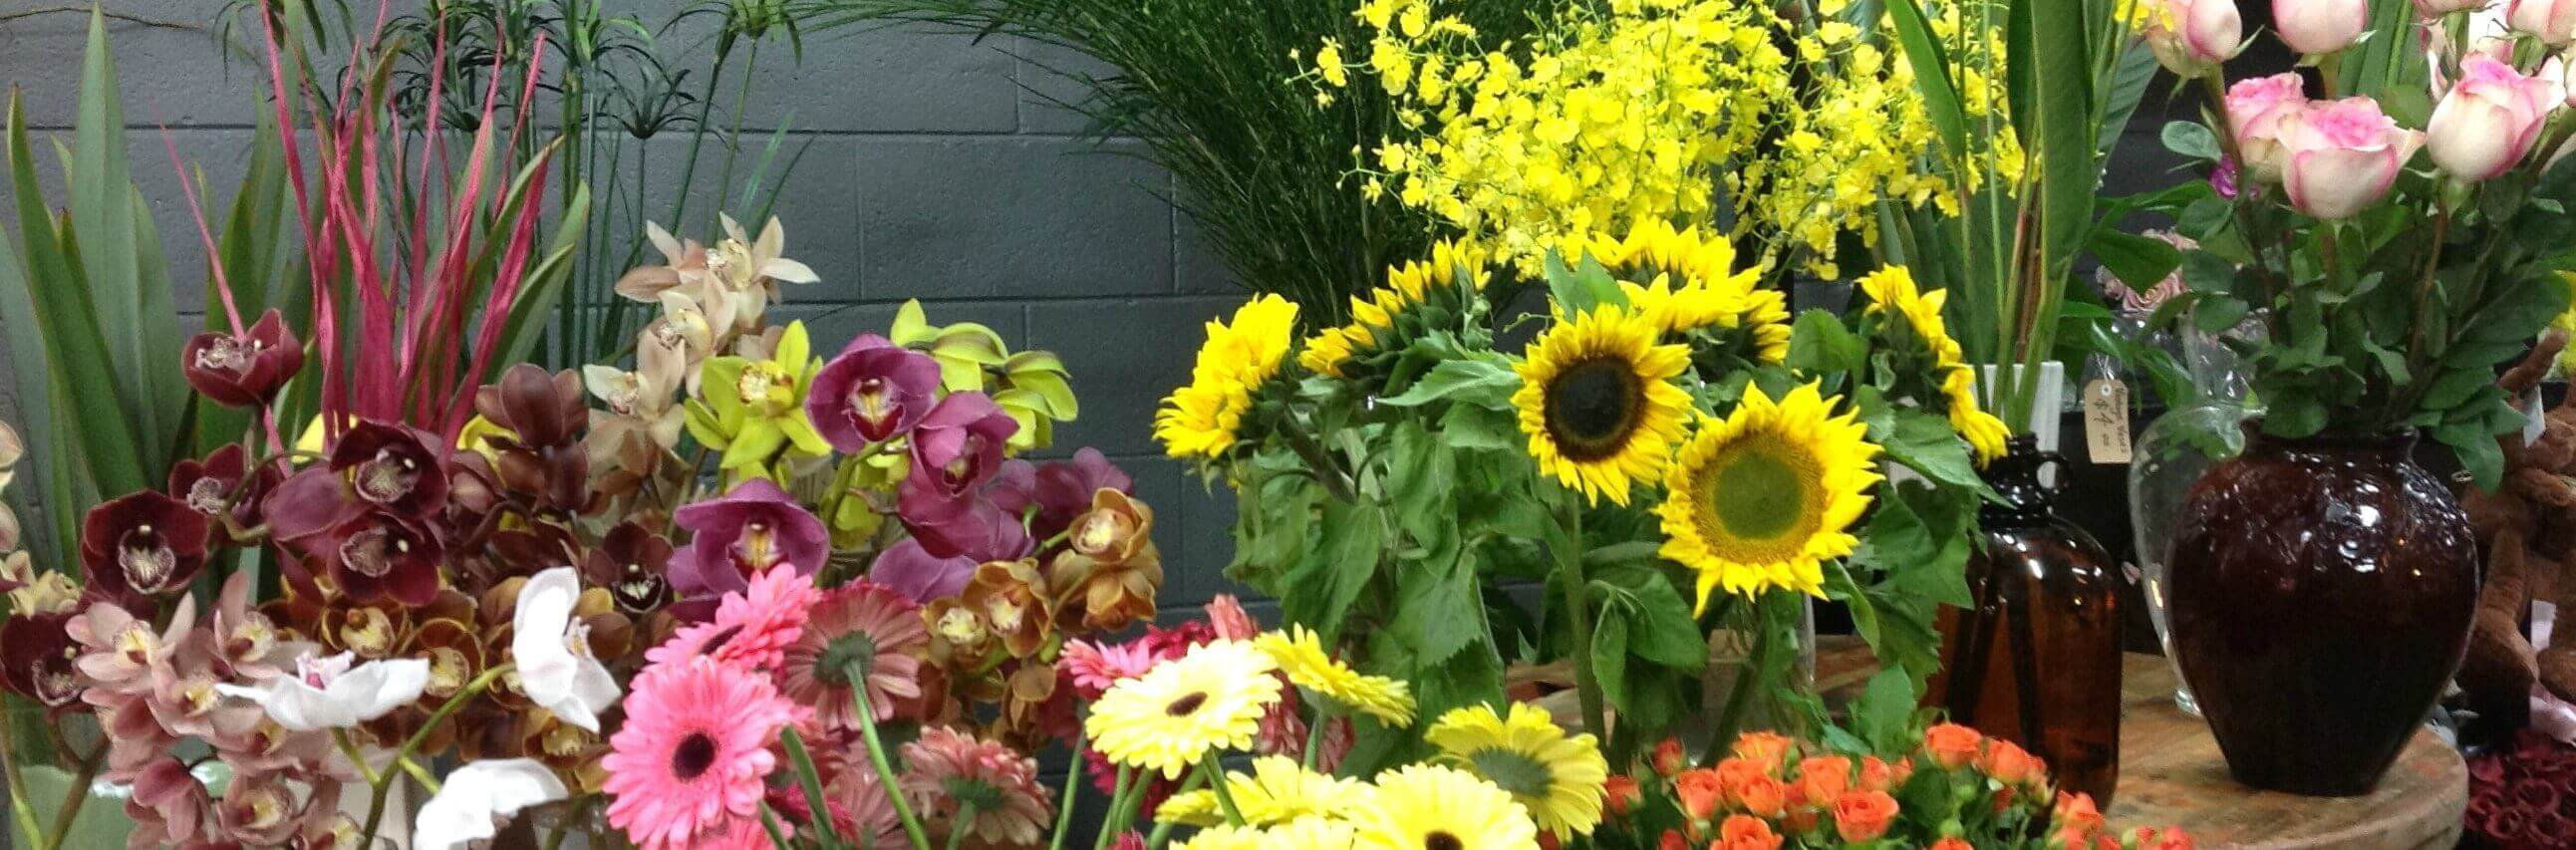 Beach Road Florist For Beautiful Flowers And Gifts In Southern